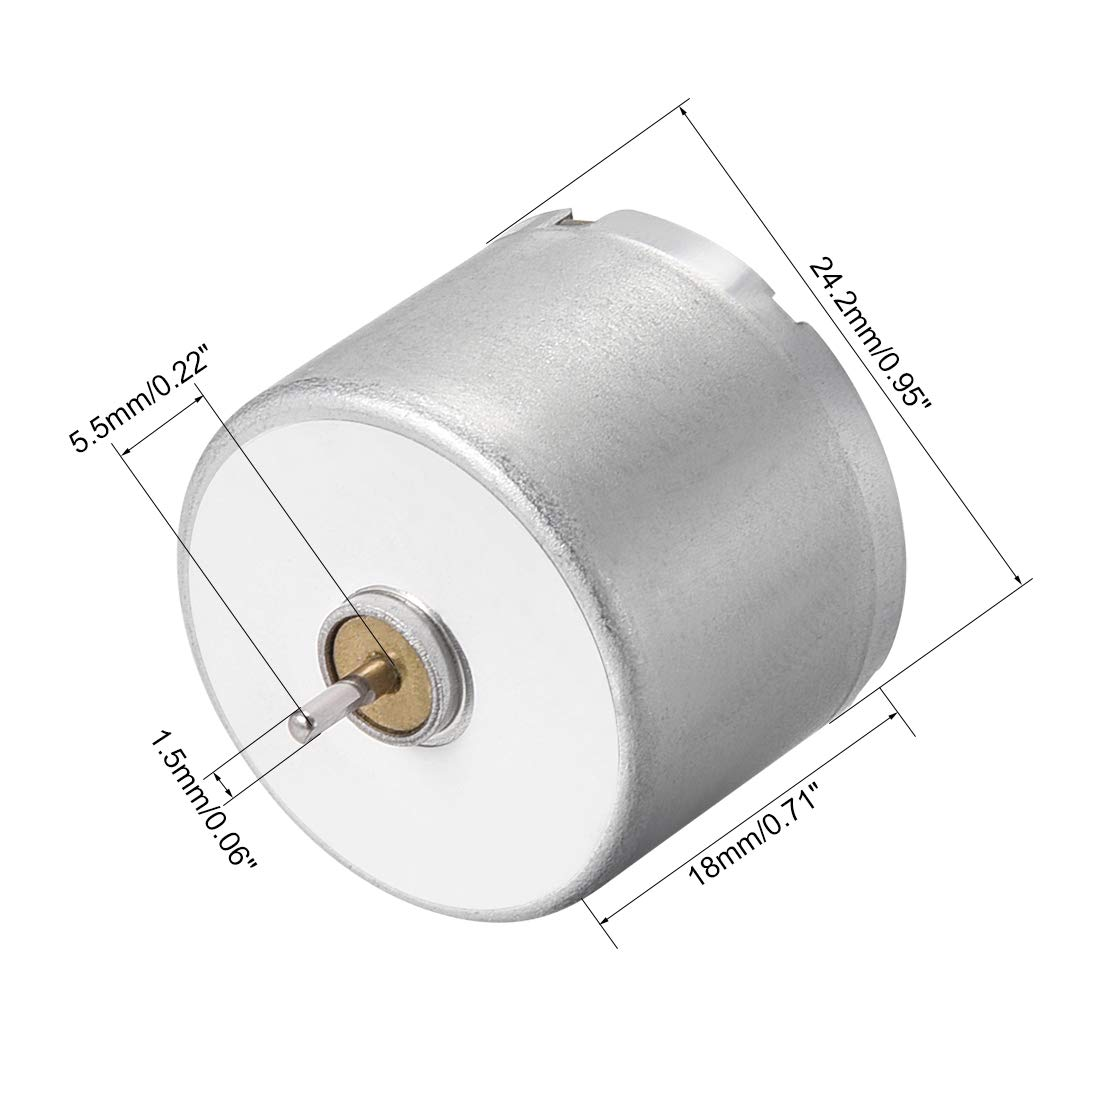 uxcell DC Motor 6V 7000-8000RPM 0.01A Electric Motor Round Shaft for RC Boat Toys Model 5Pcs